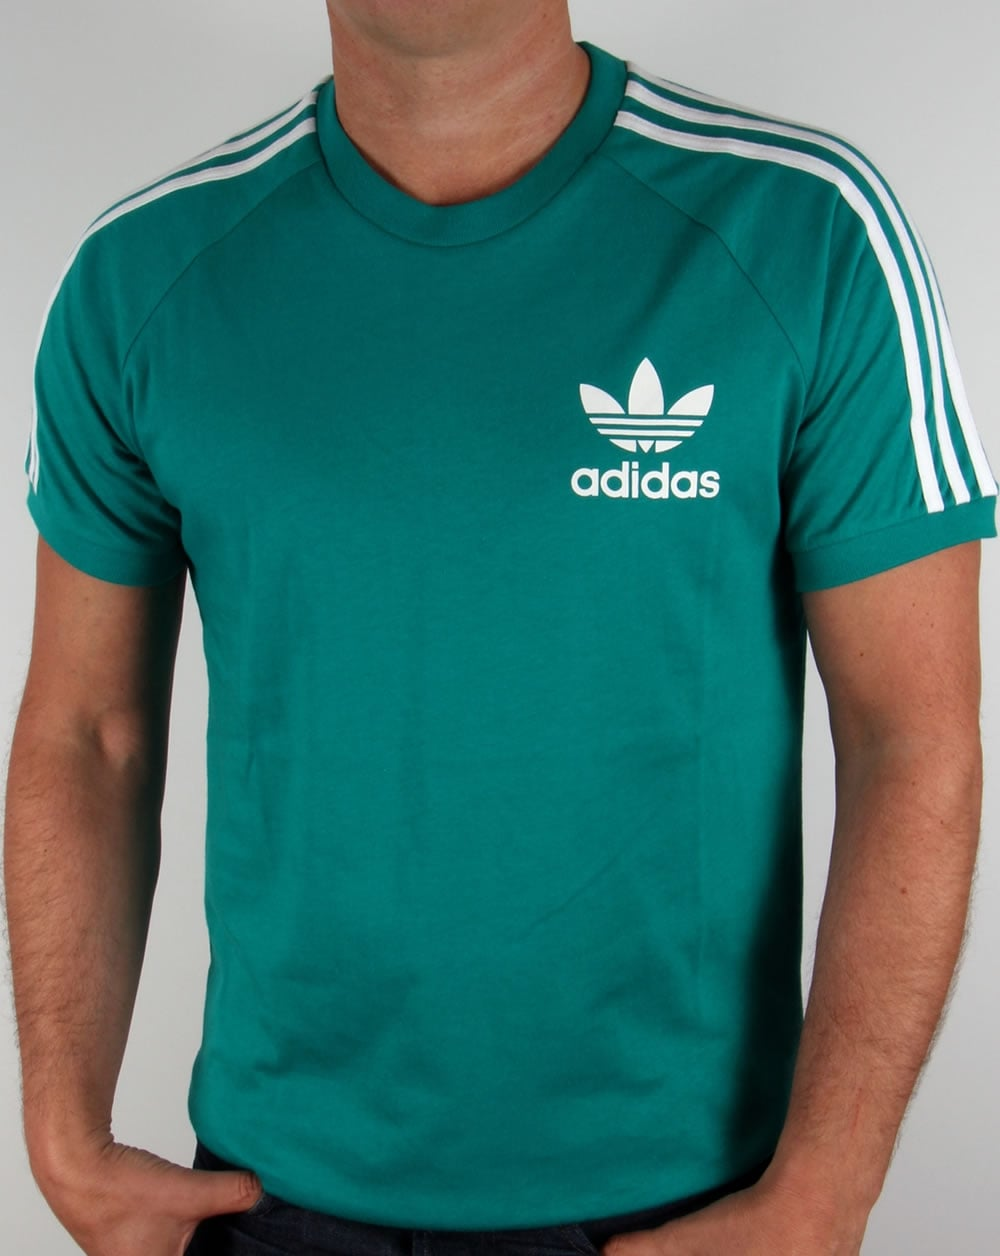 adidas originals trefoil 3 stripes t shirt eqt green retro. Black Bedroom Furniture Sets. Home Design Ideas